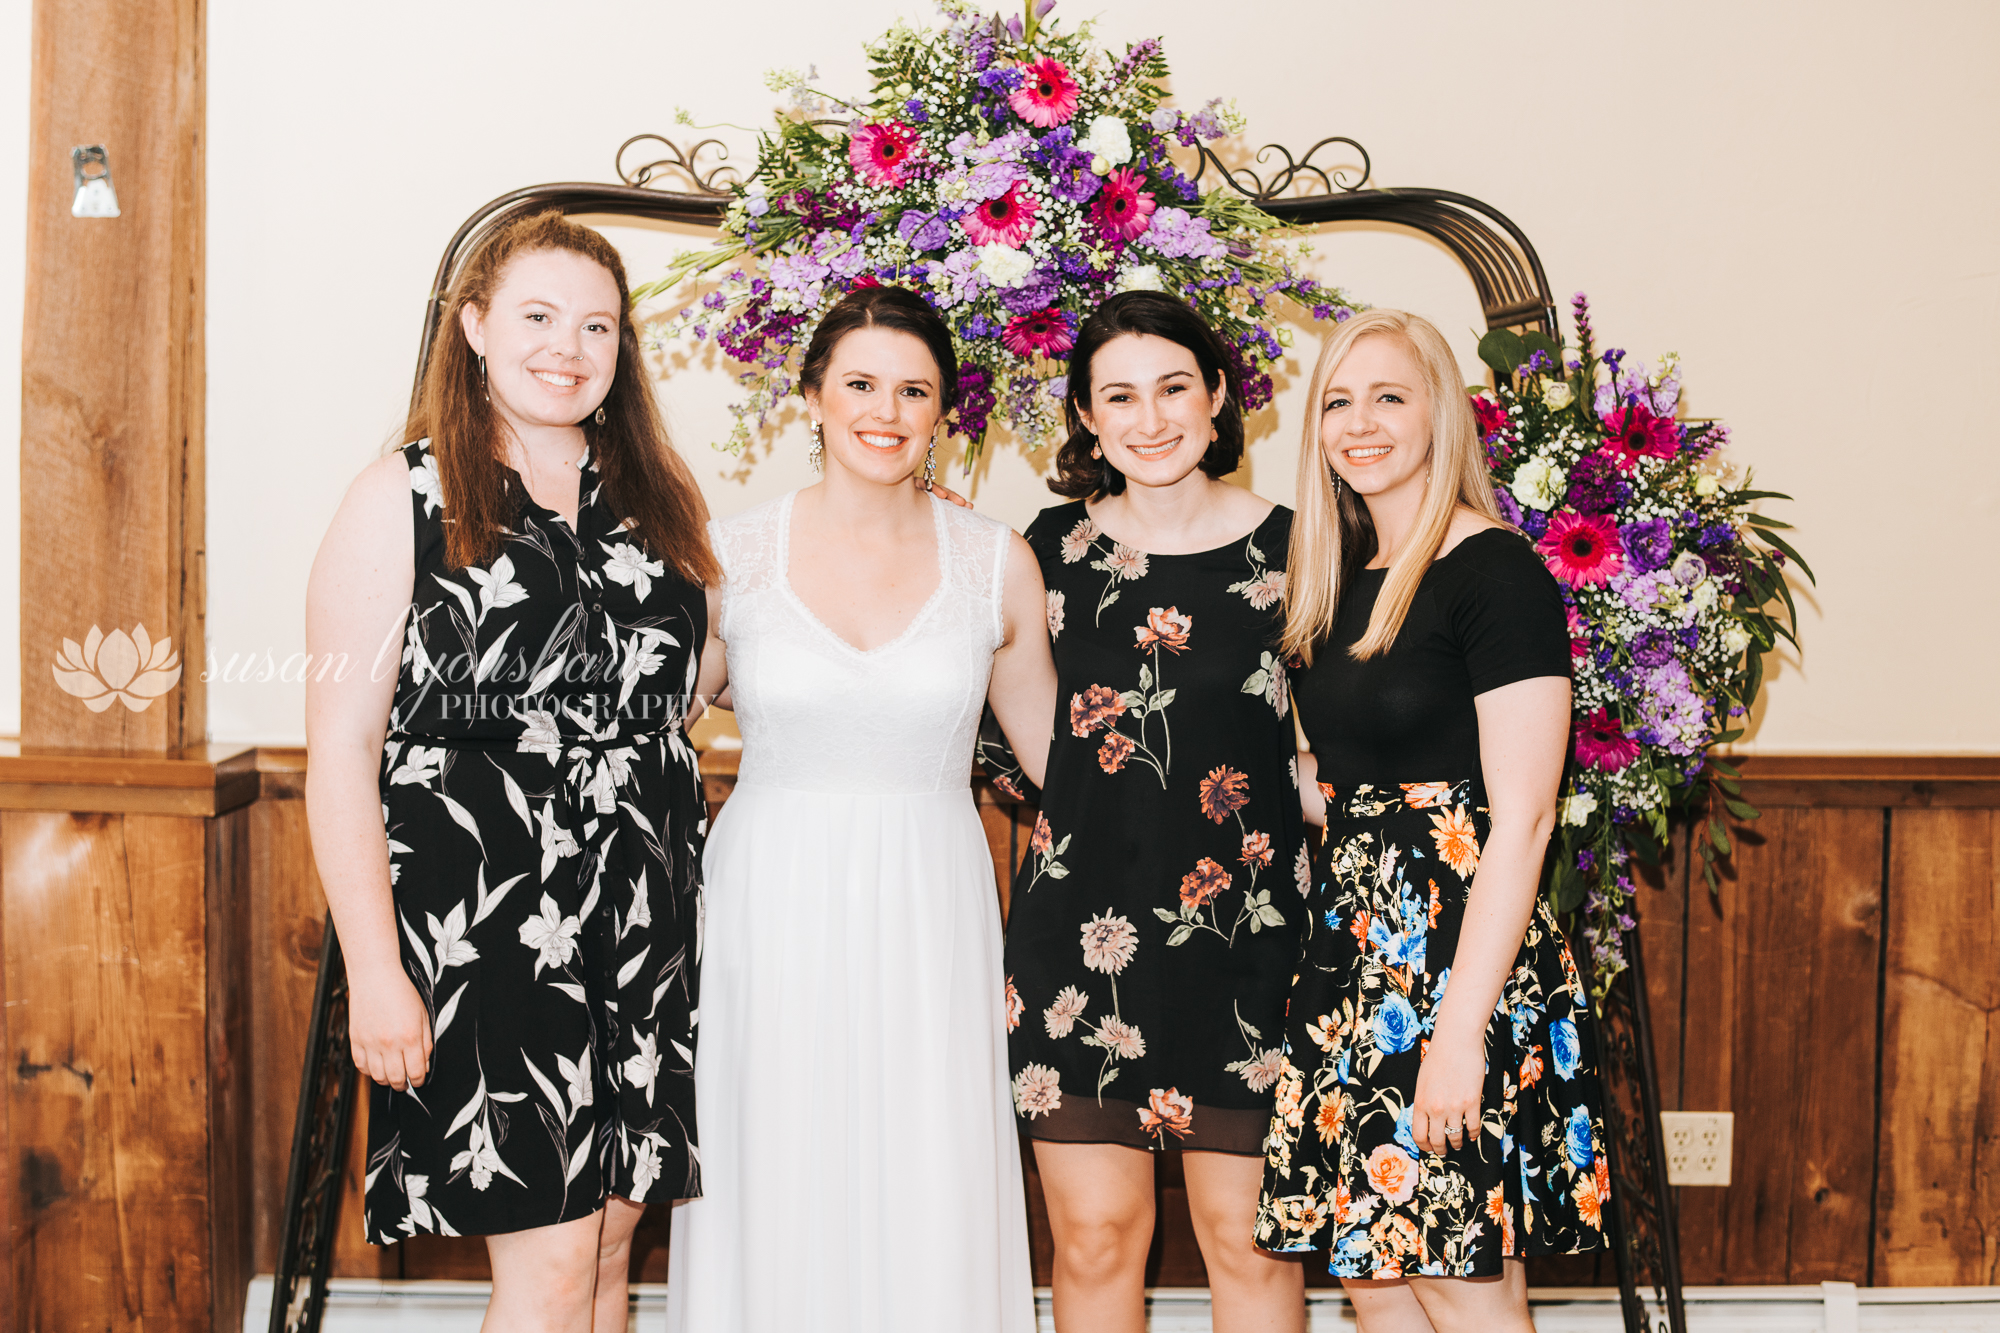 Adena and  Erik Wedding 05-17-2019 SLY Photography-108.jpg